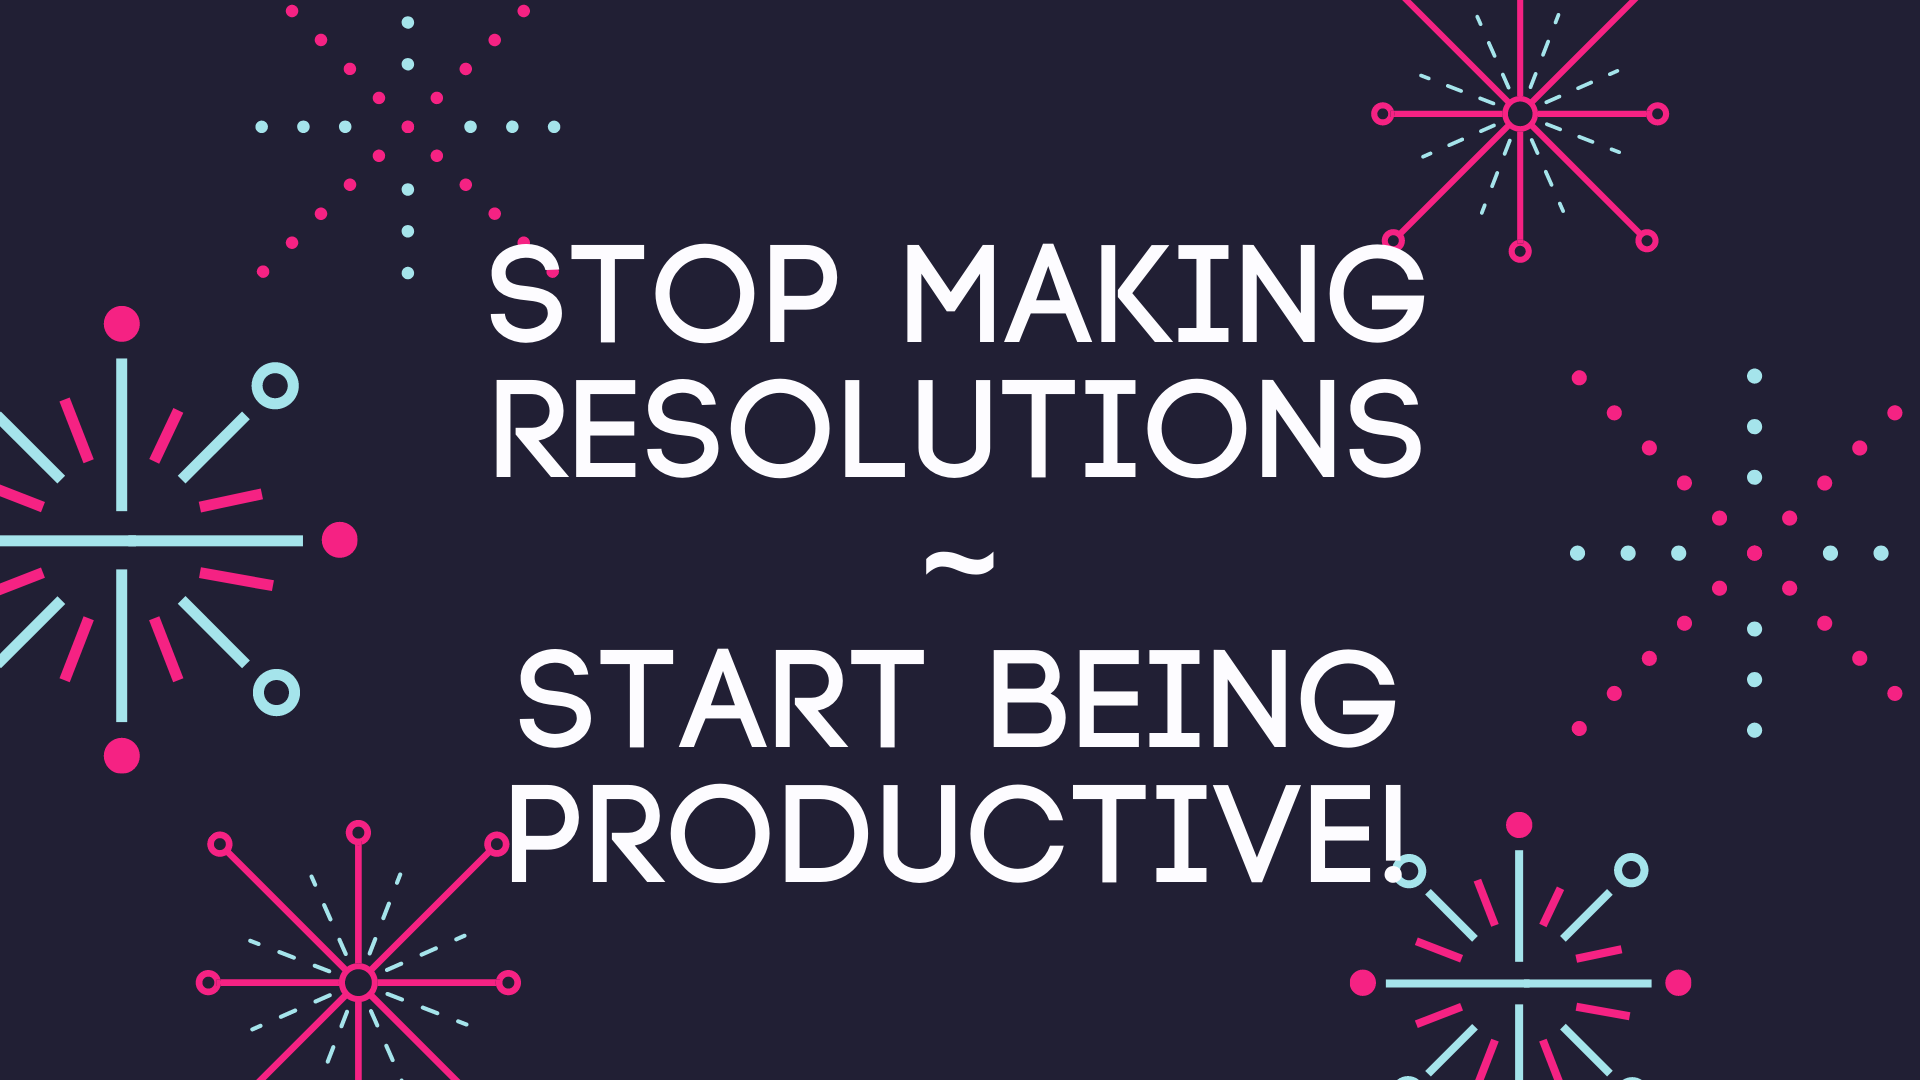 Stop Making Resolutions